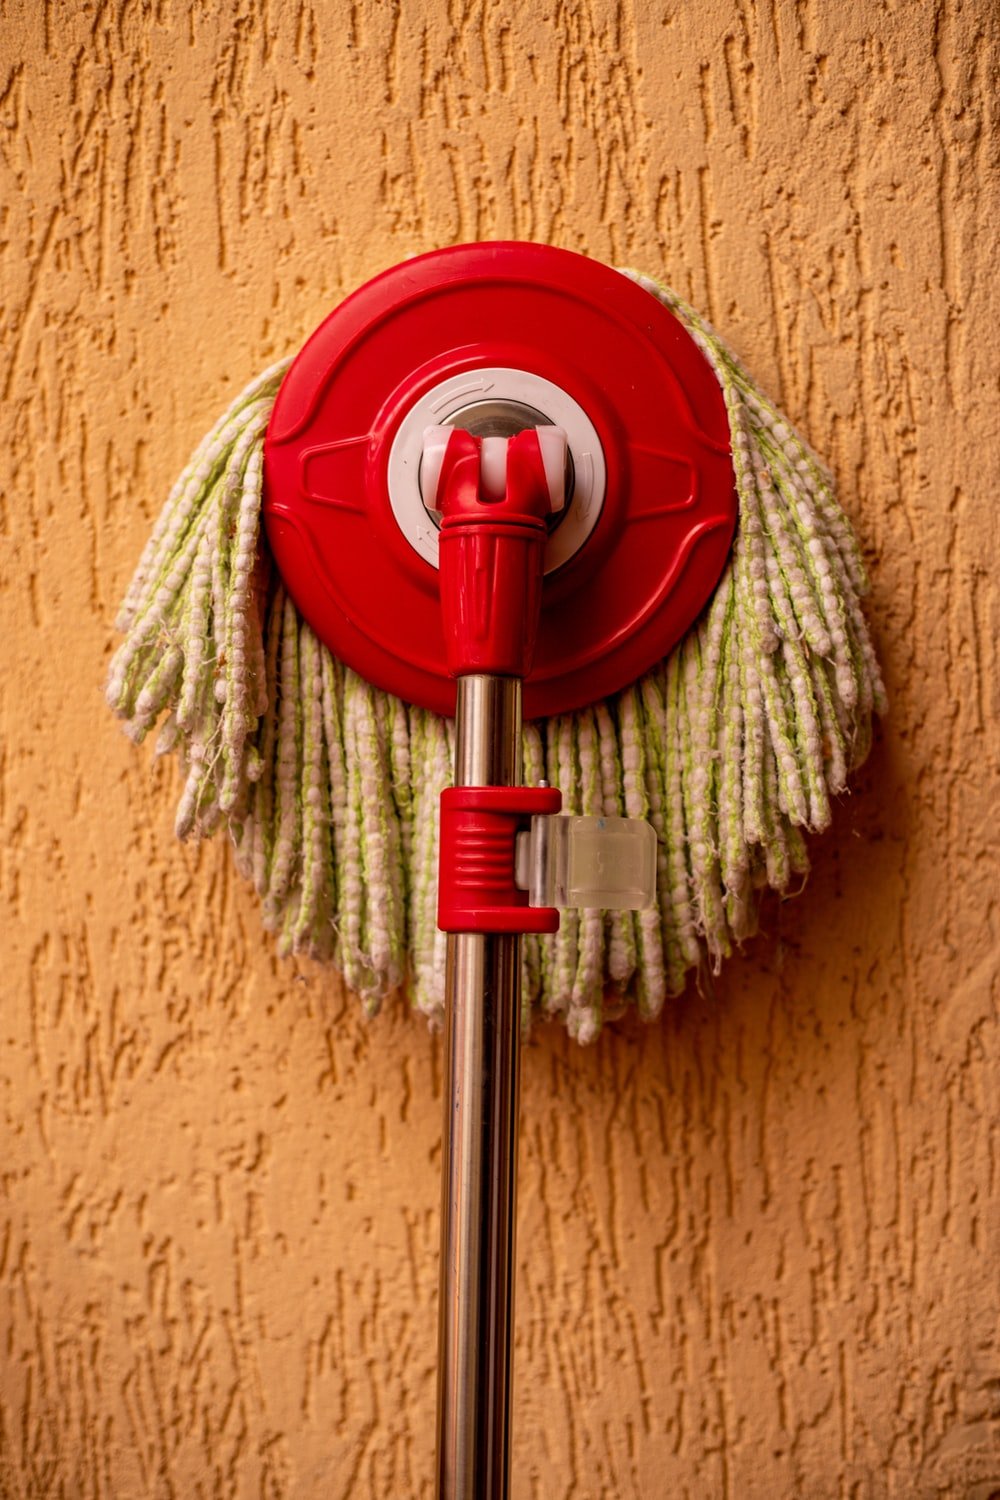 red and silver mop on yellow textile